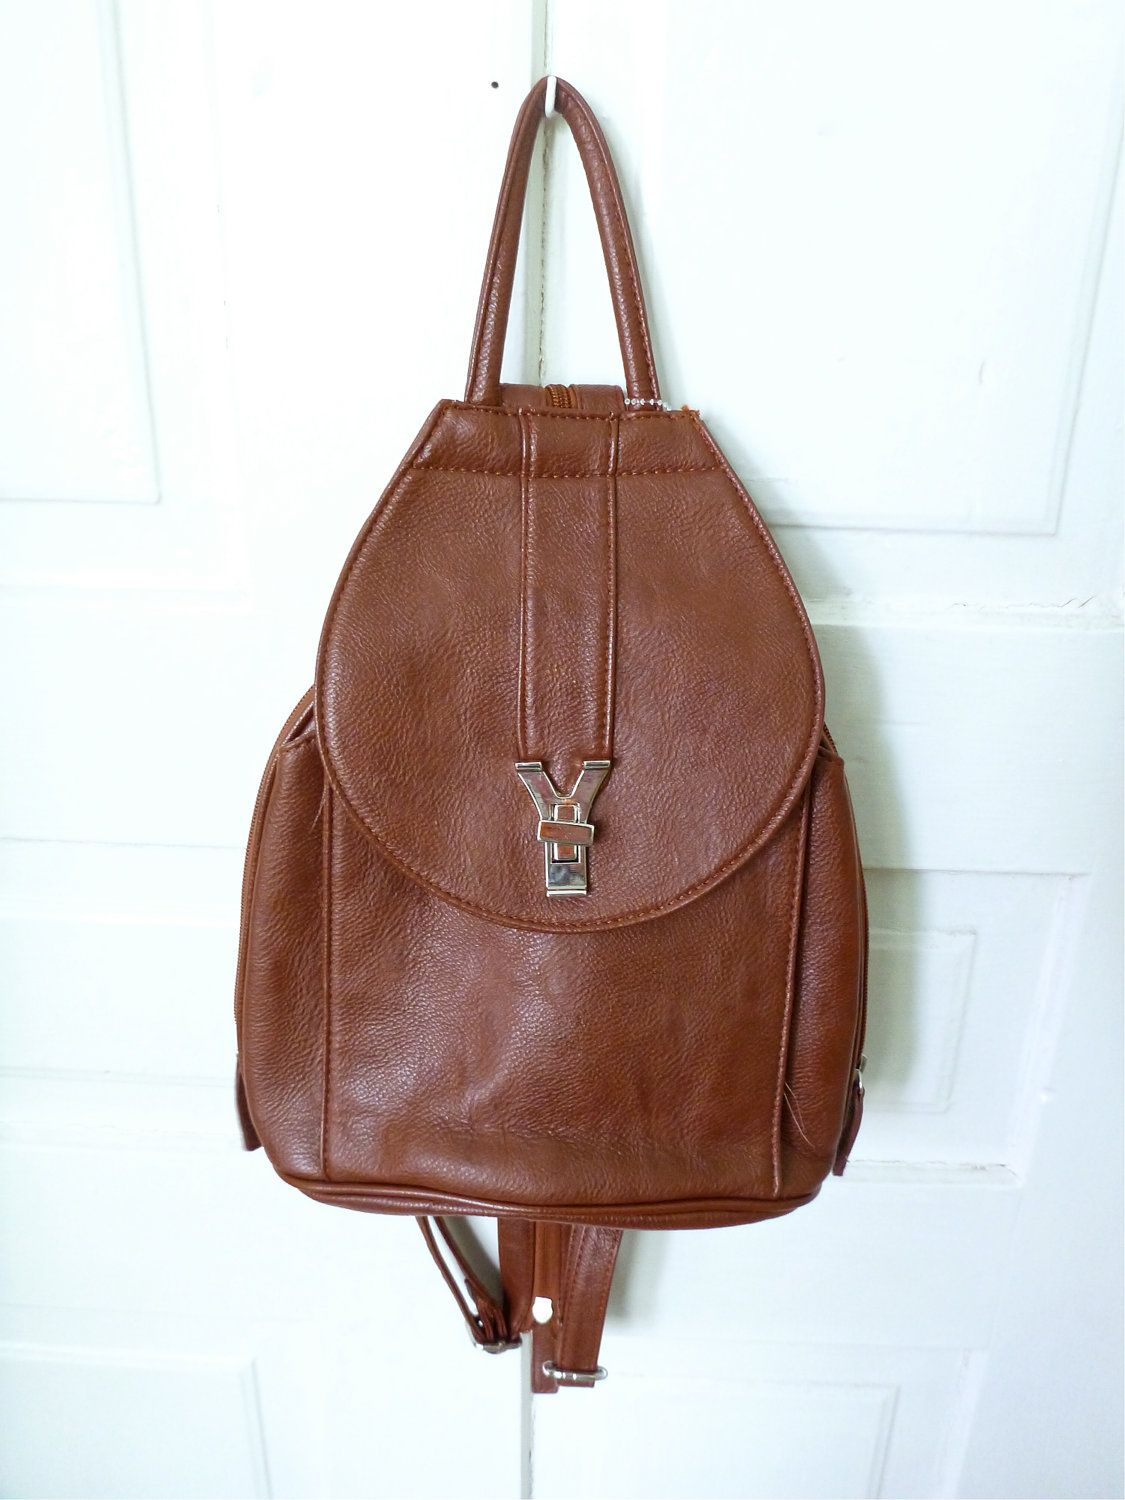 3742af55cef 90s Brown Mini Backpack- Grunge, Preppy, Bag, Purse, Faux Leather ...